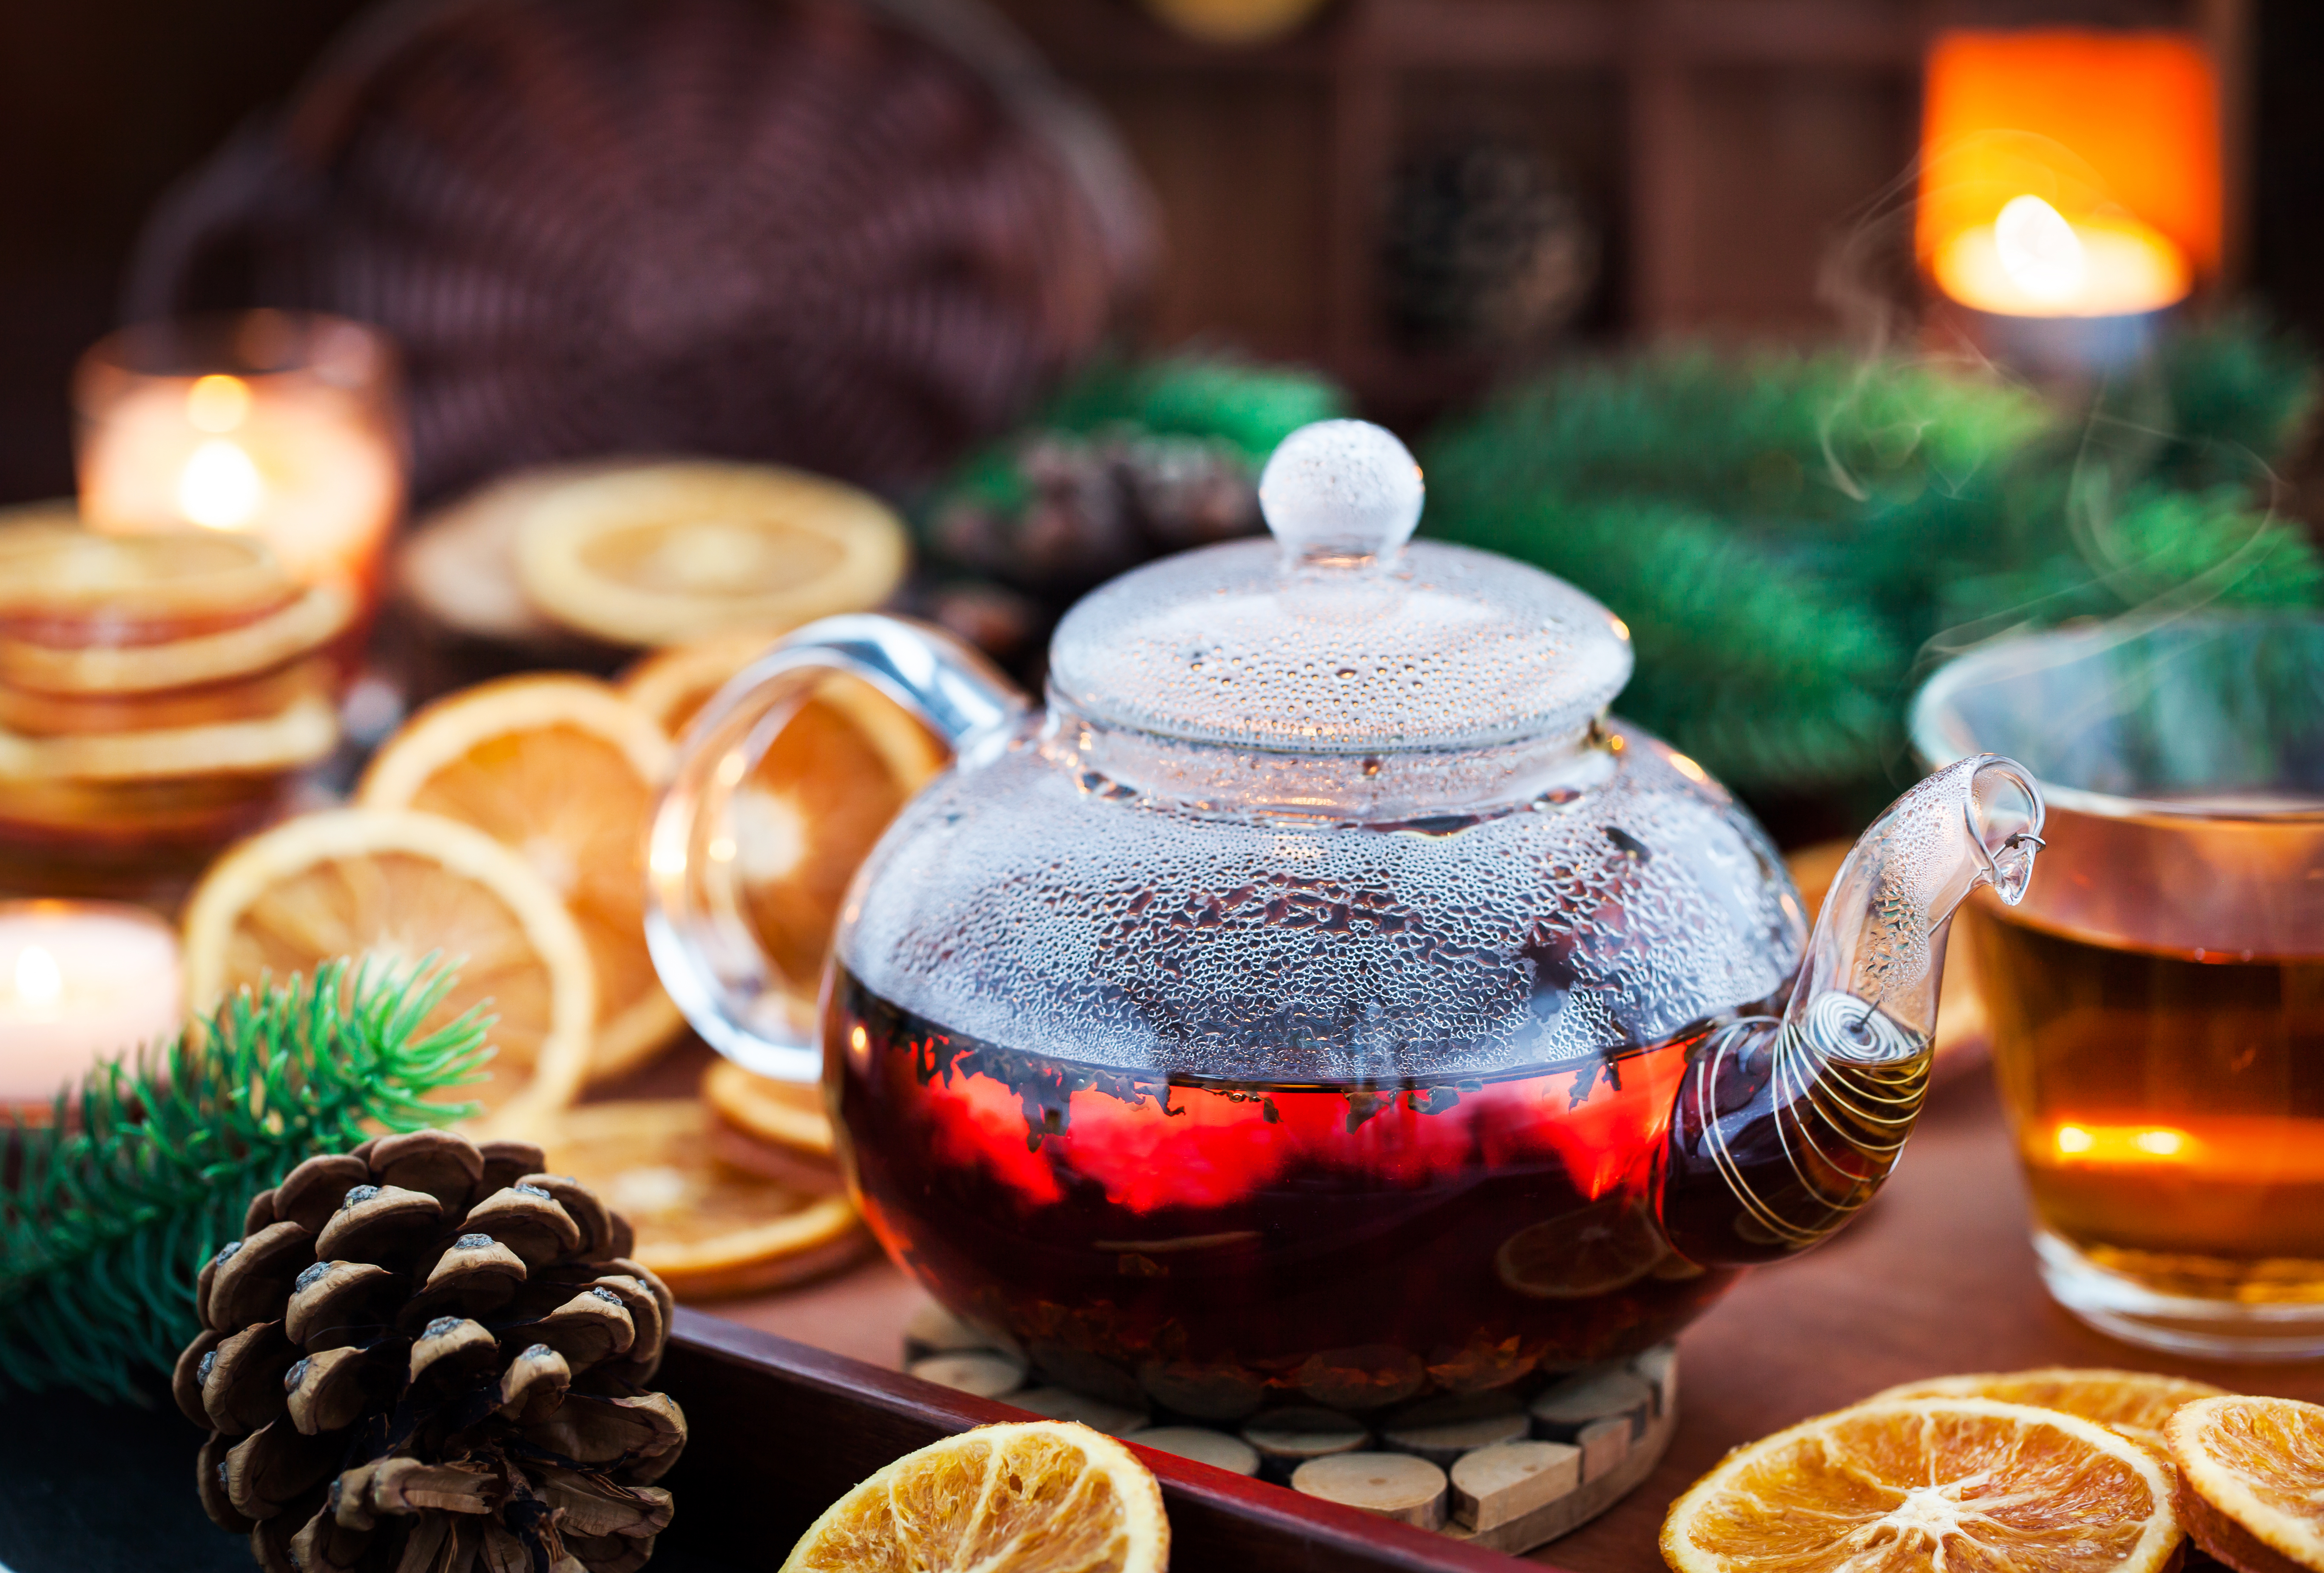 Glass teapot of hot black tea on cozy background with dried oranges and candles